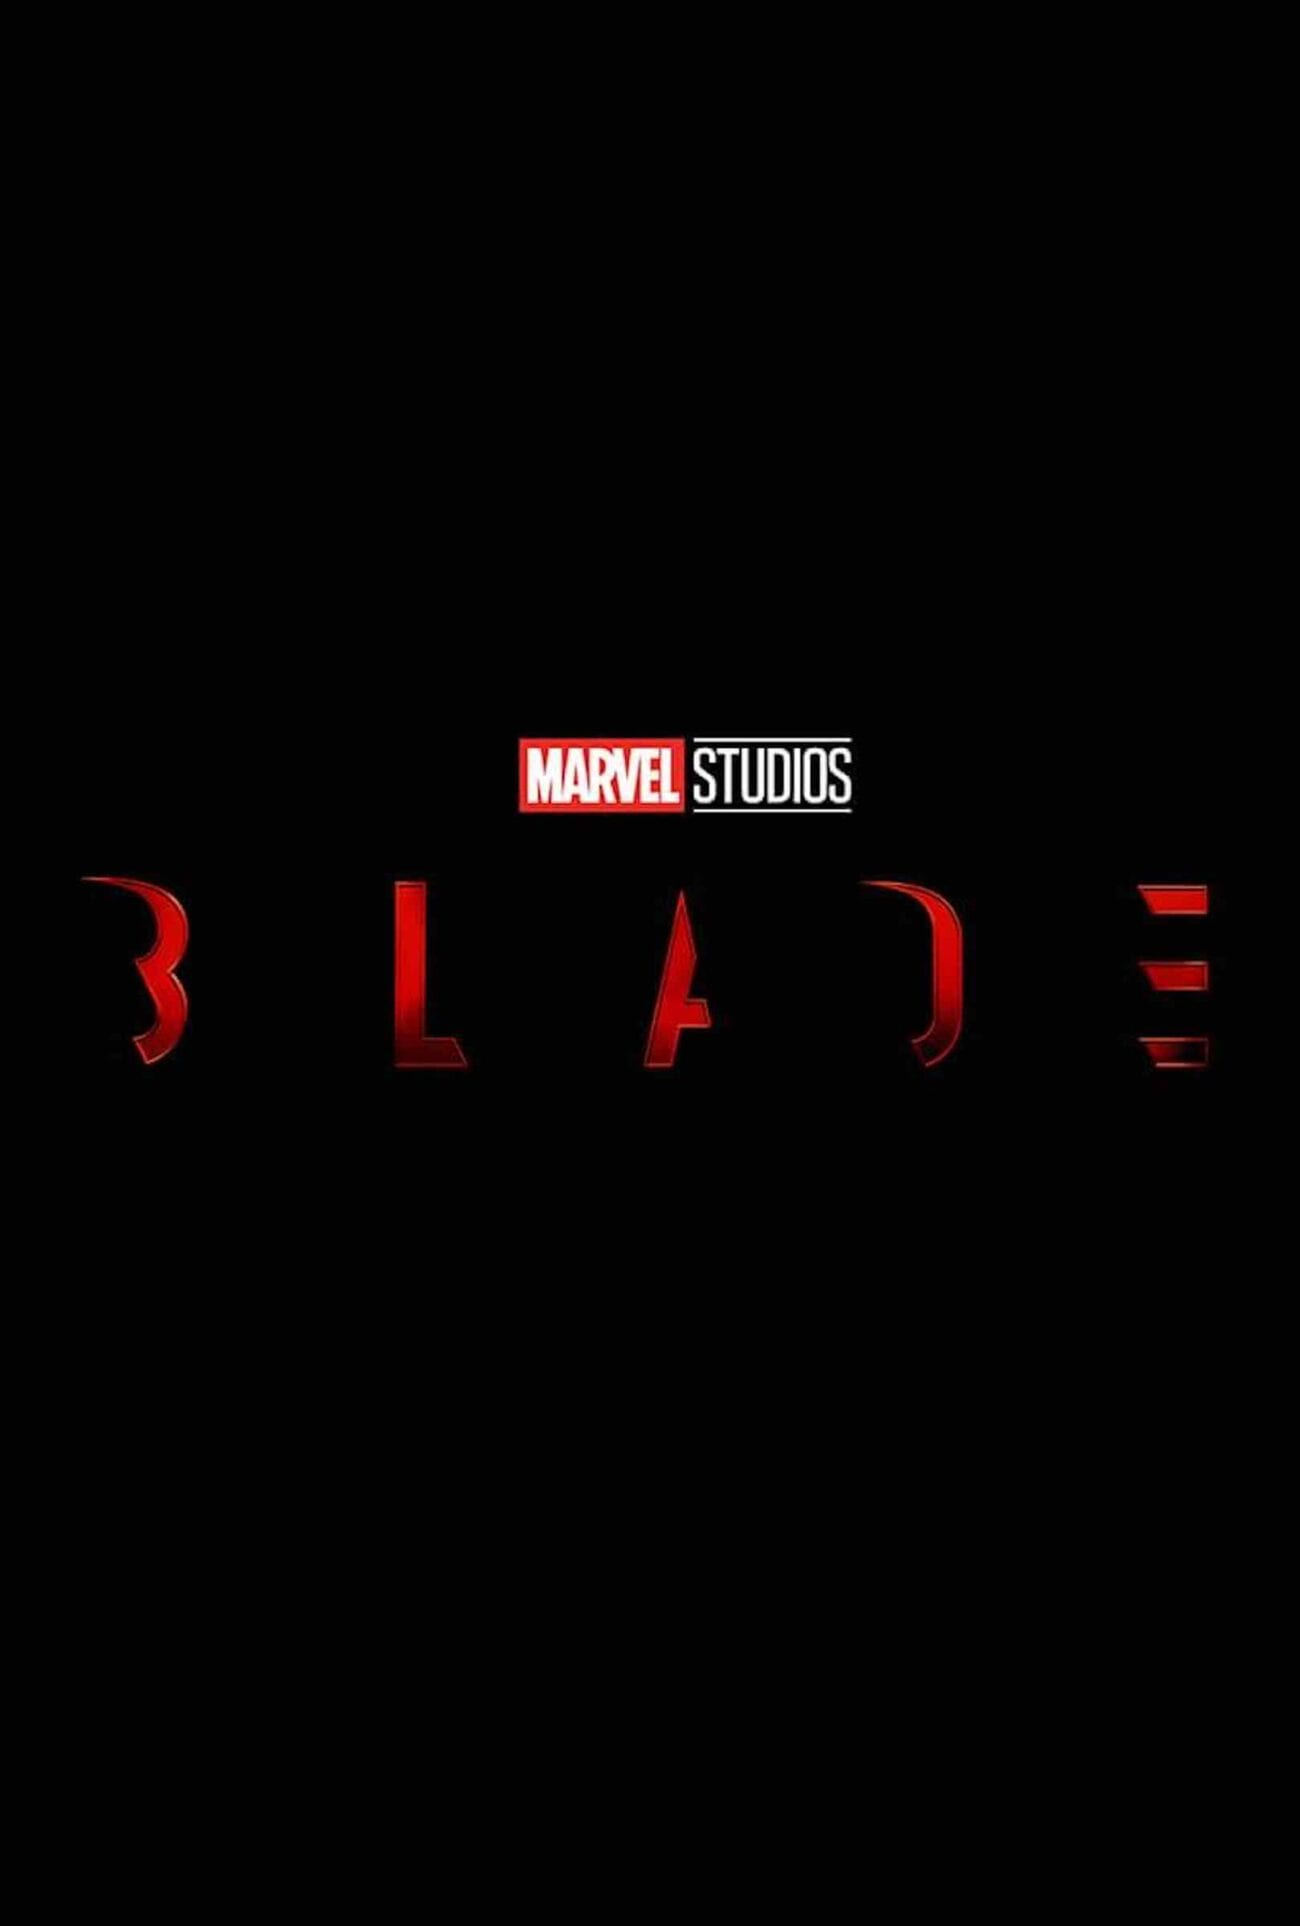 With all of these updates, why's Marvel silent about this film? Grab your stakes and dive into what we know about the silence surrounding the 'Blade' movie.